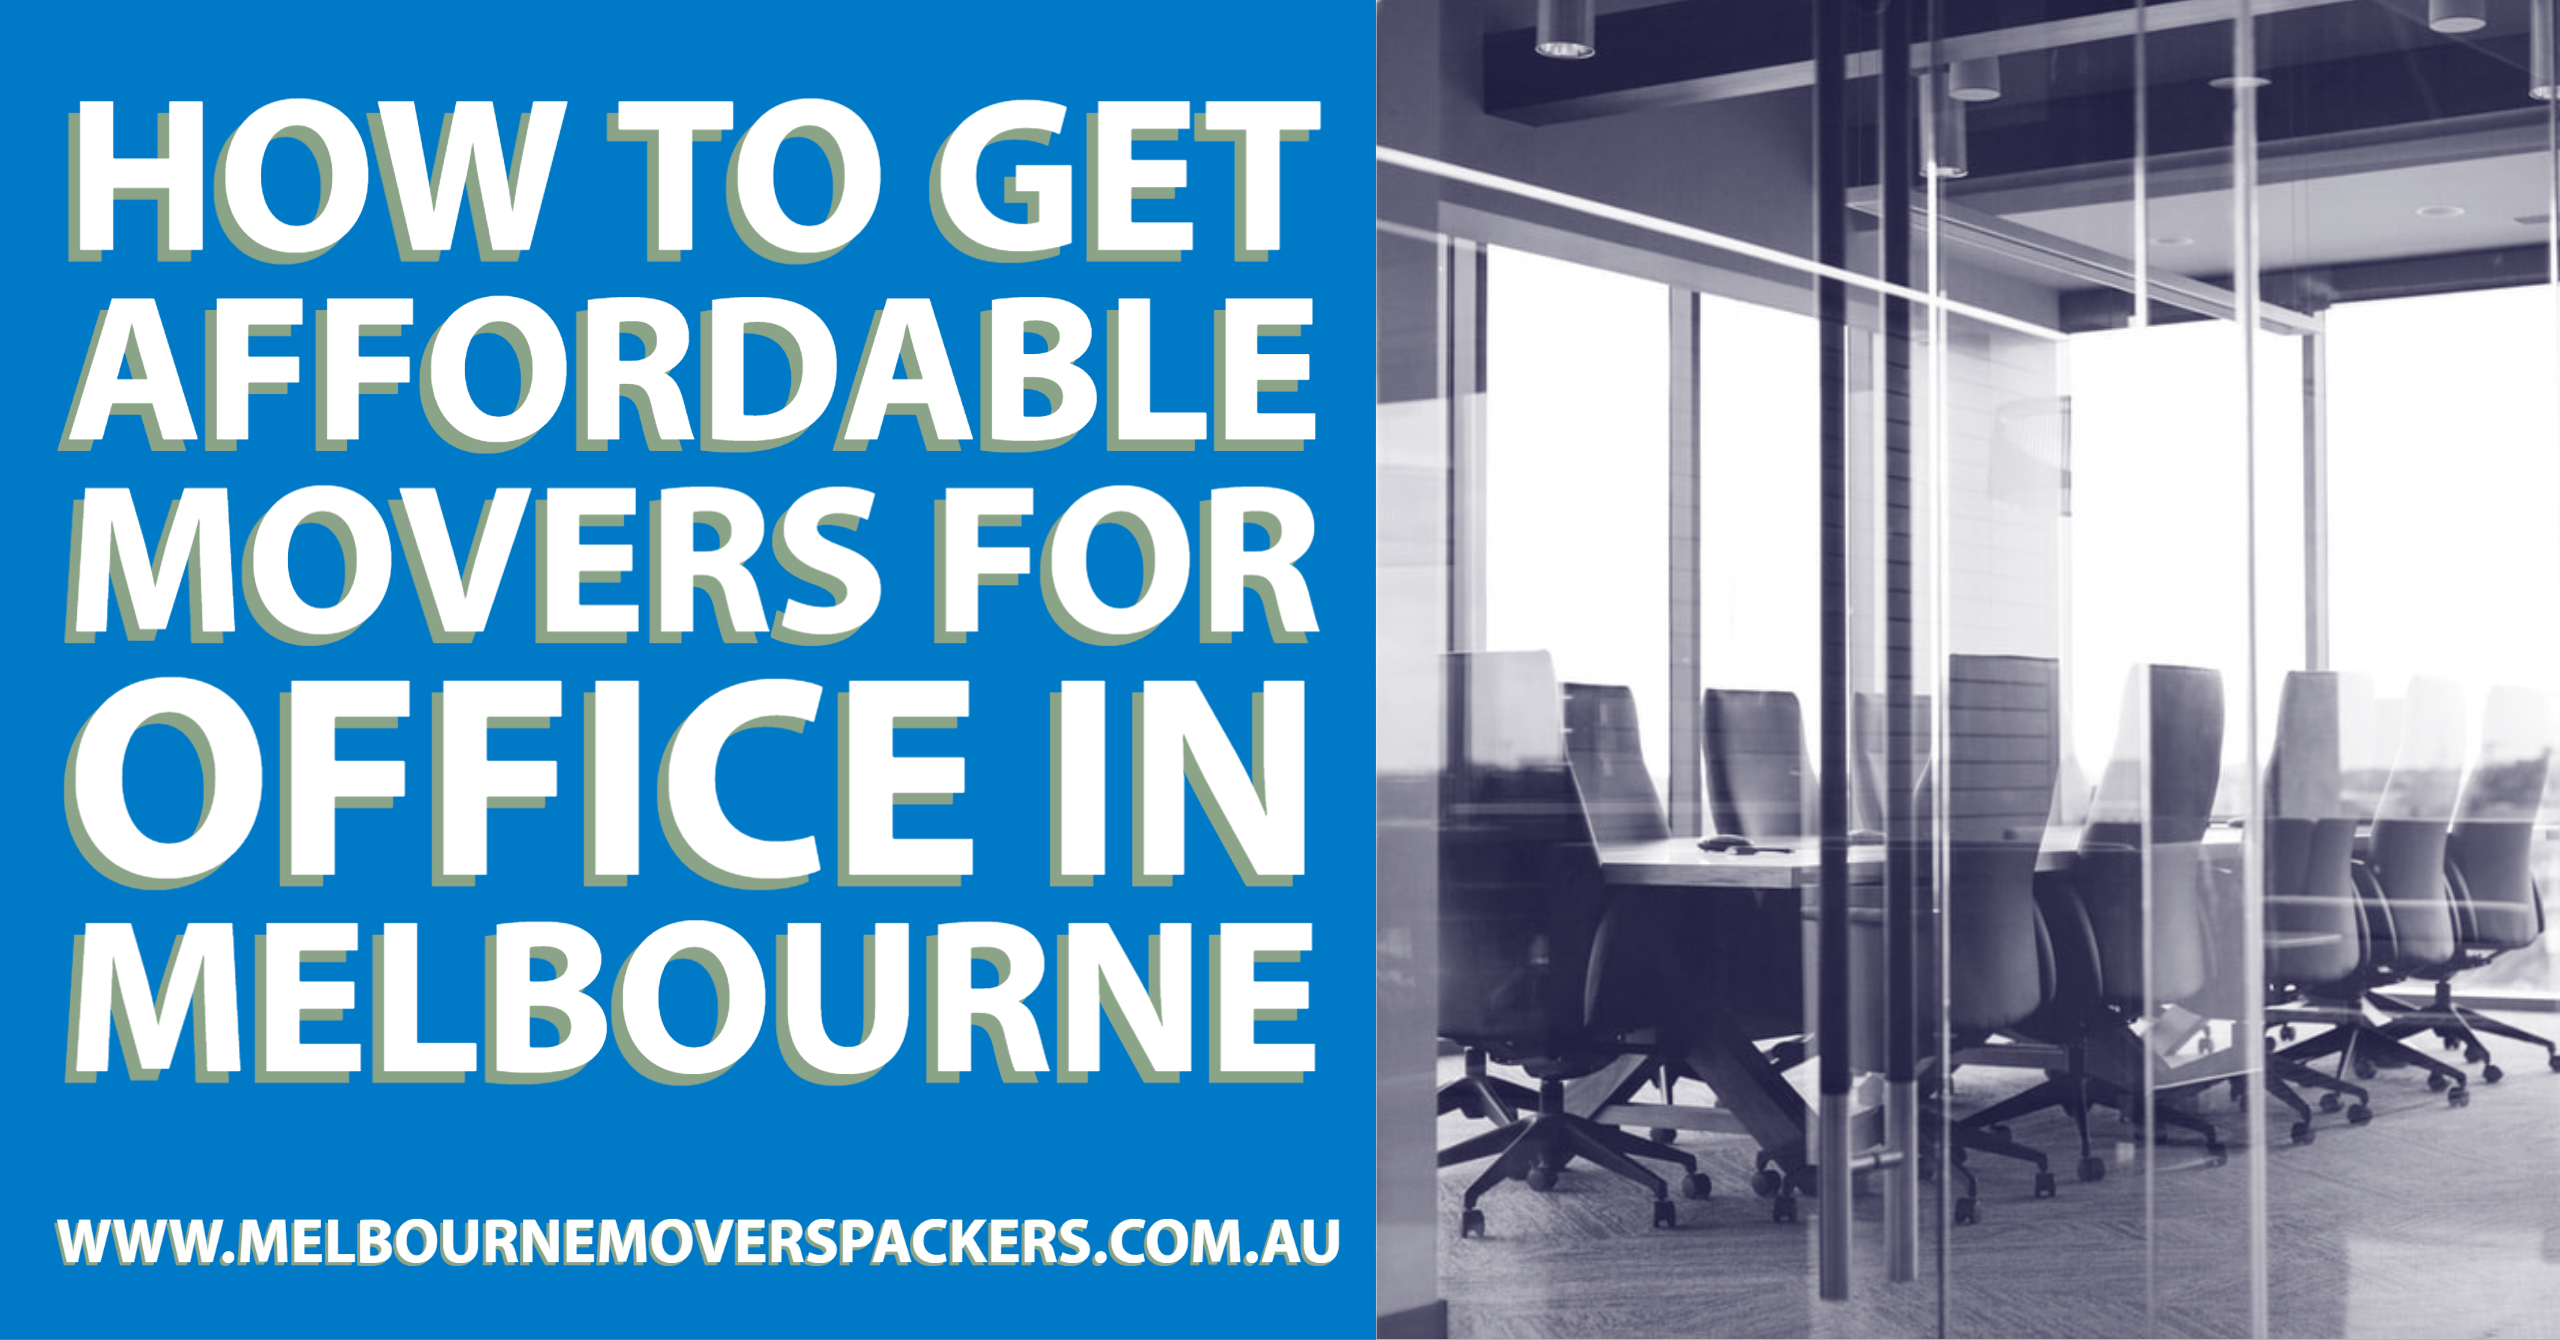 How to get Affordable Movers for Office in Melbourne